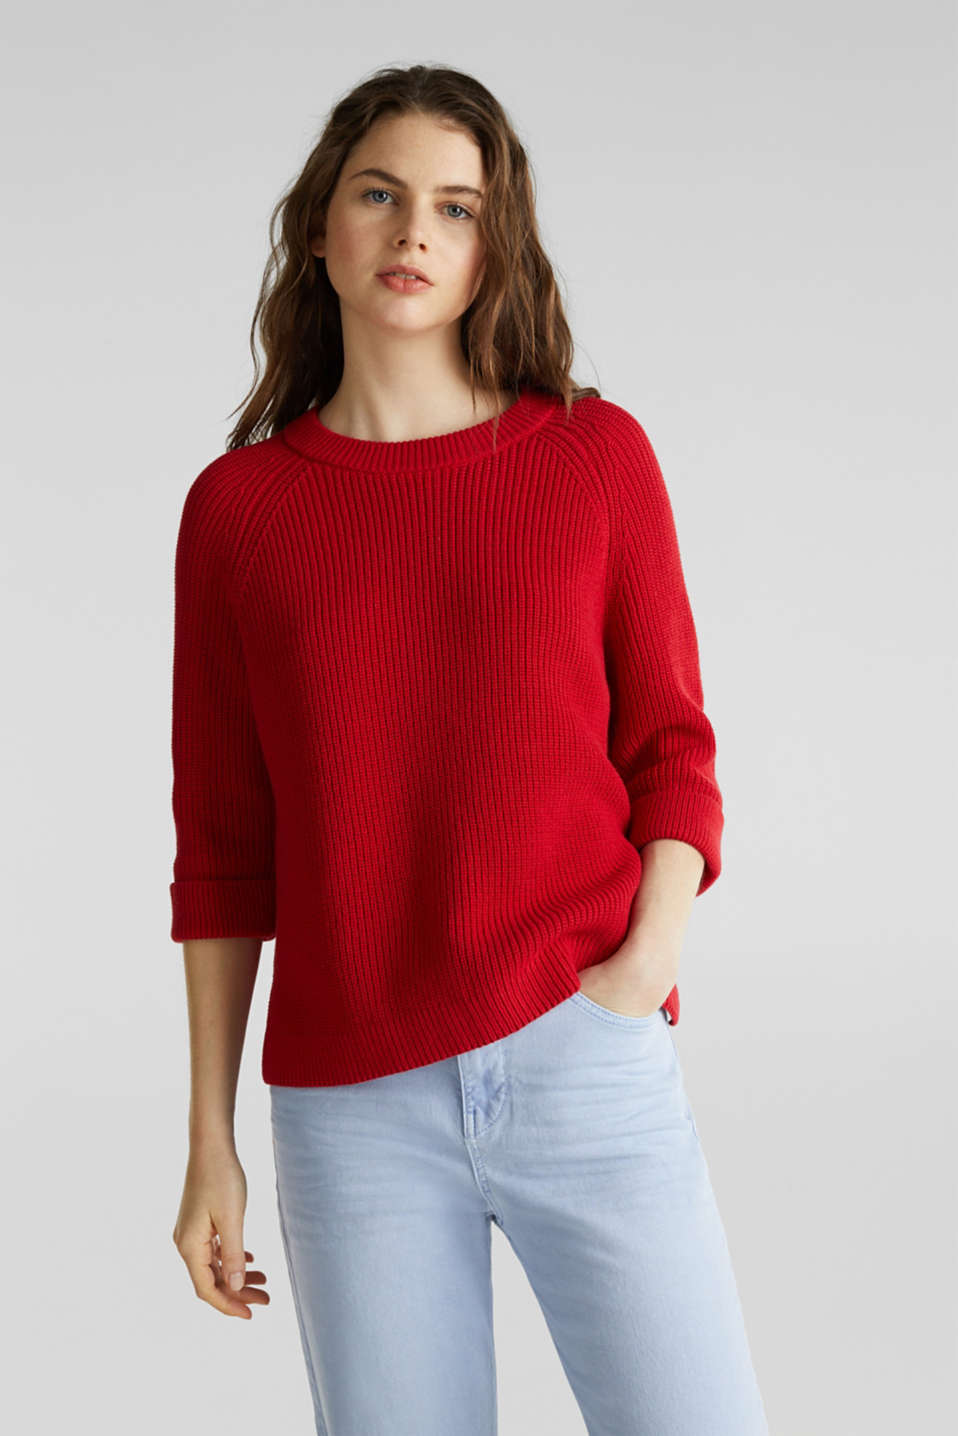 Esprit - Jumper with a high-low hem, 100% cotton